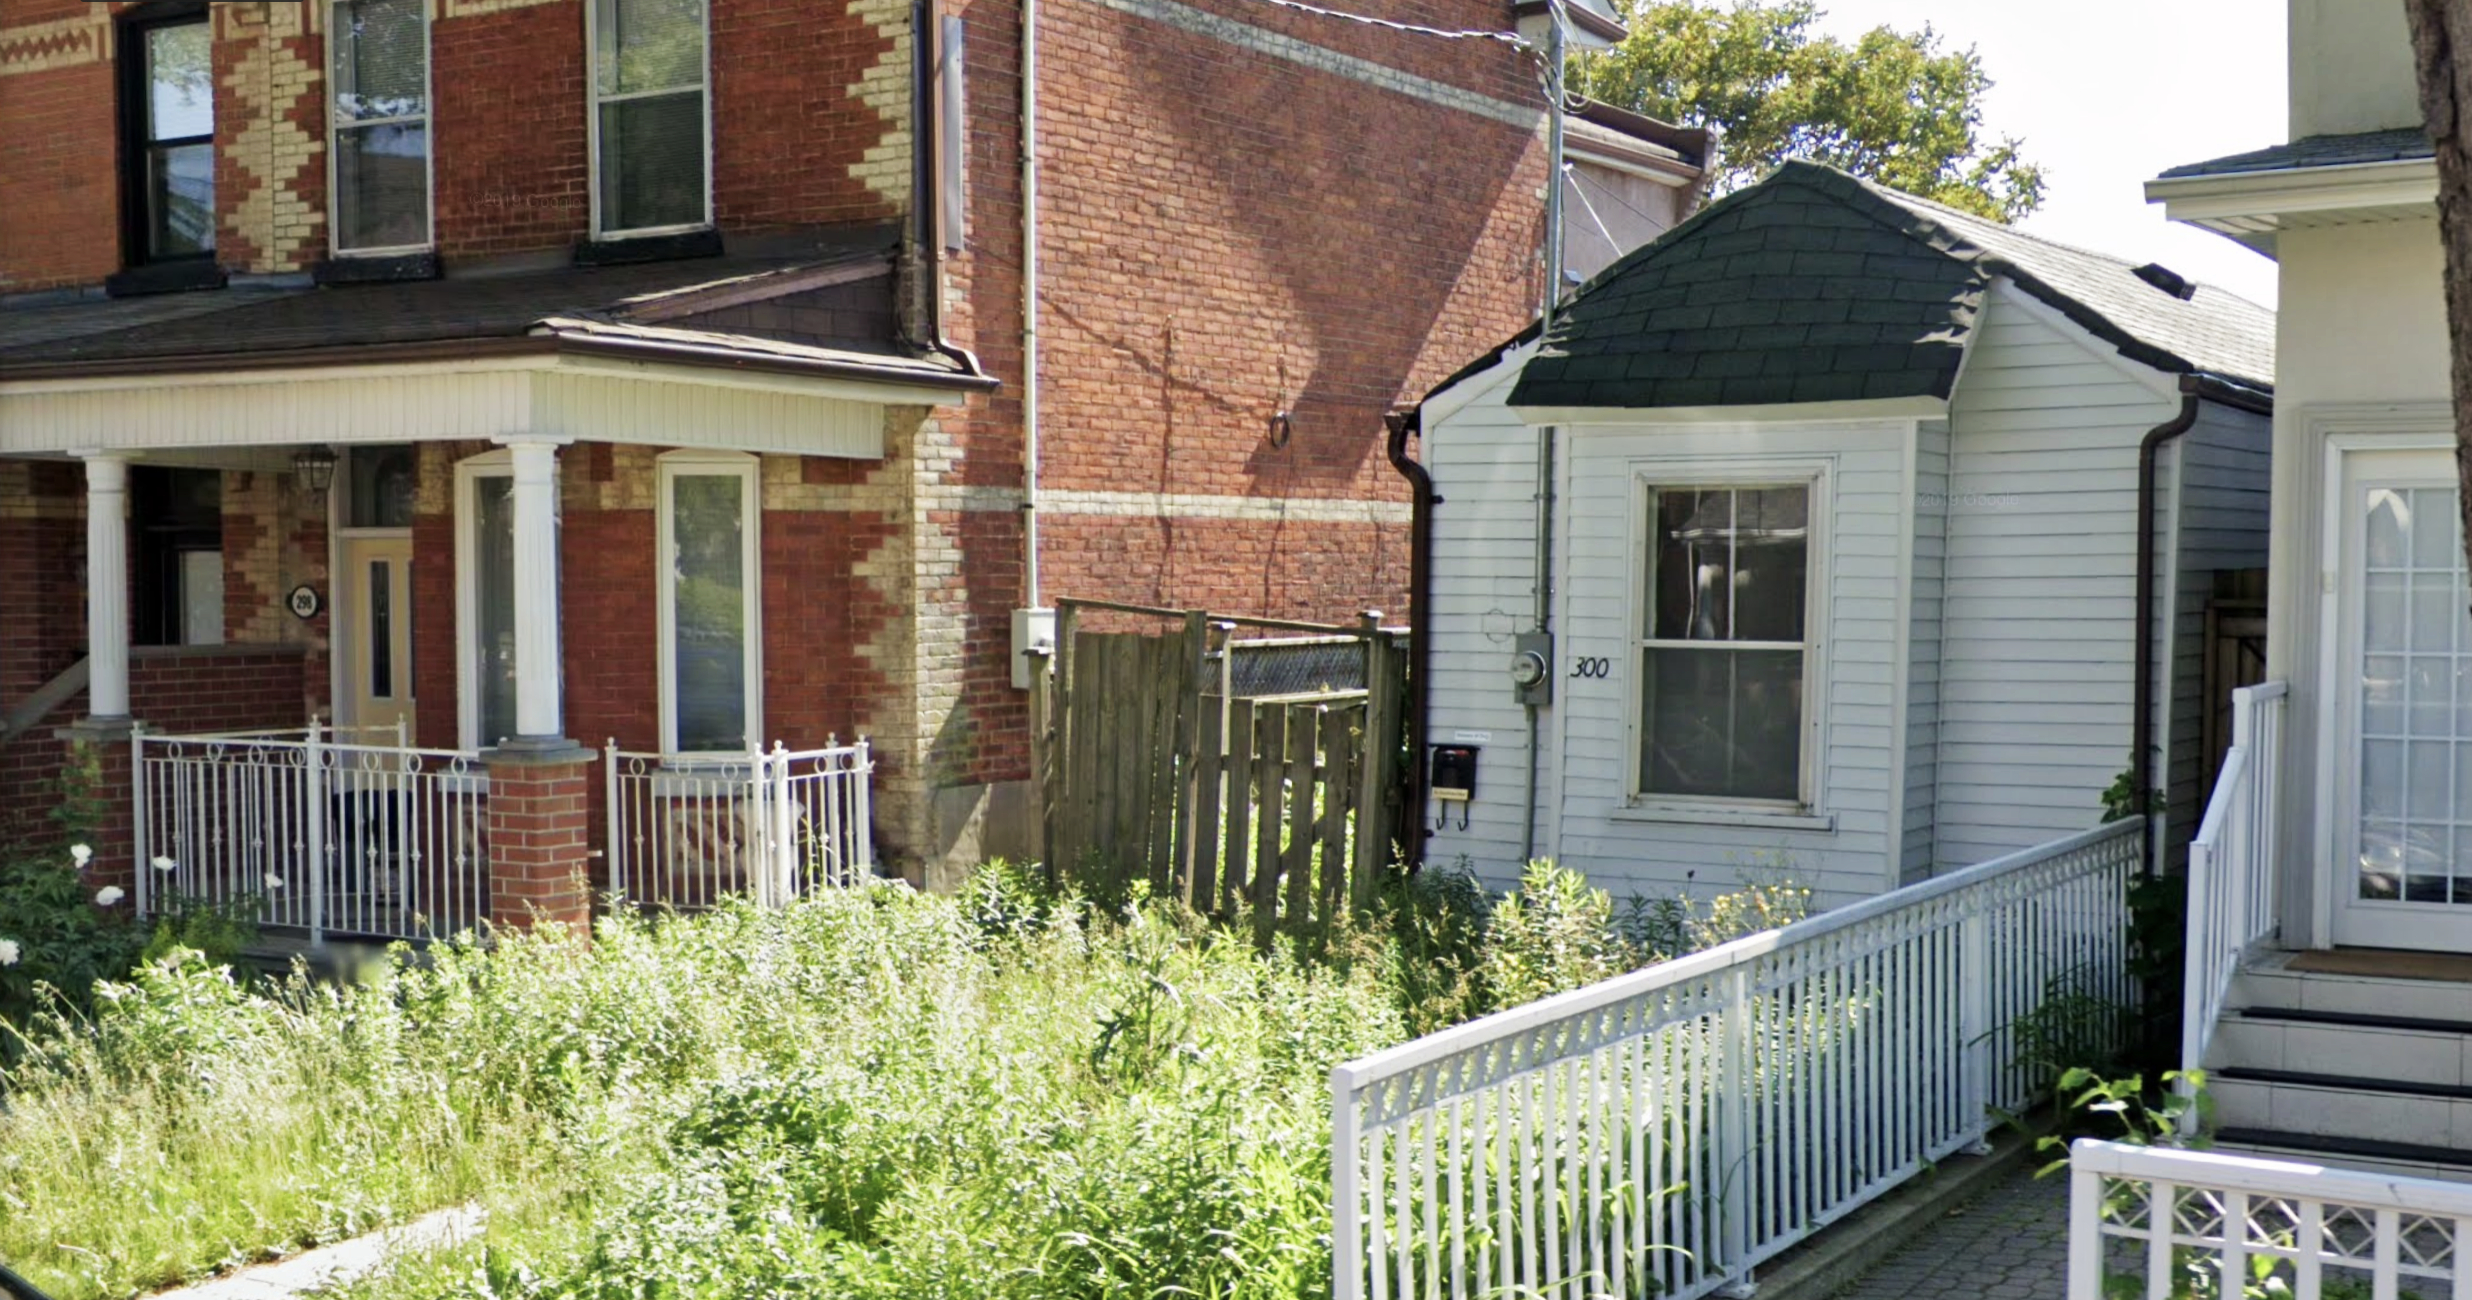 This tiny Toronto house just sold for $29.29 million  CTV News